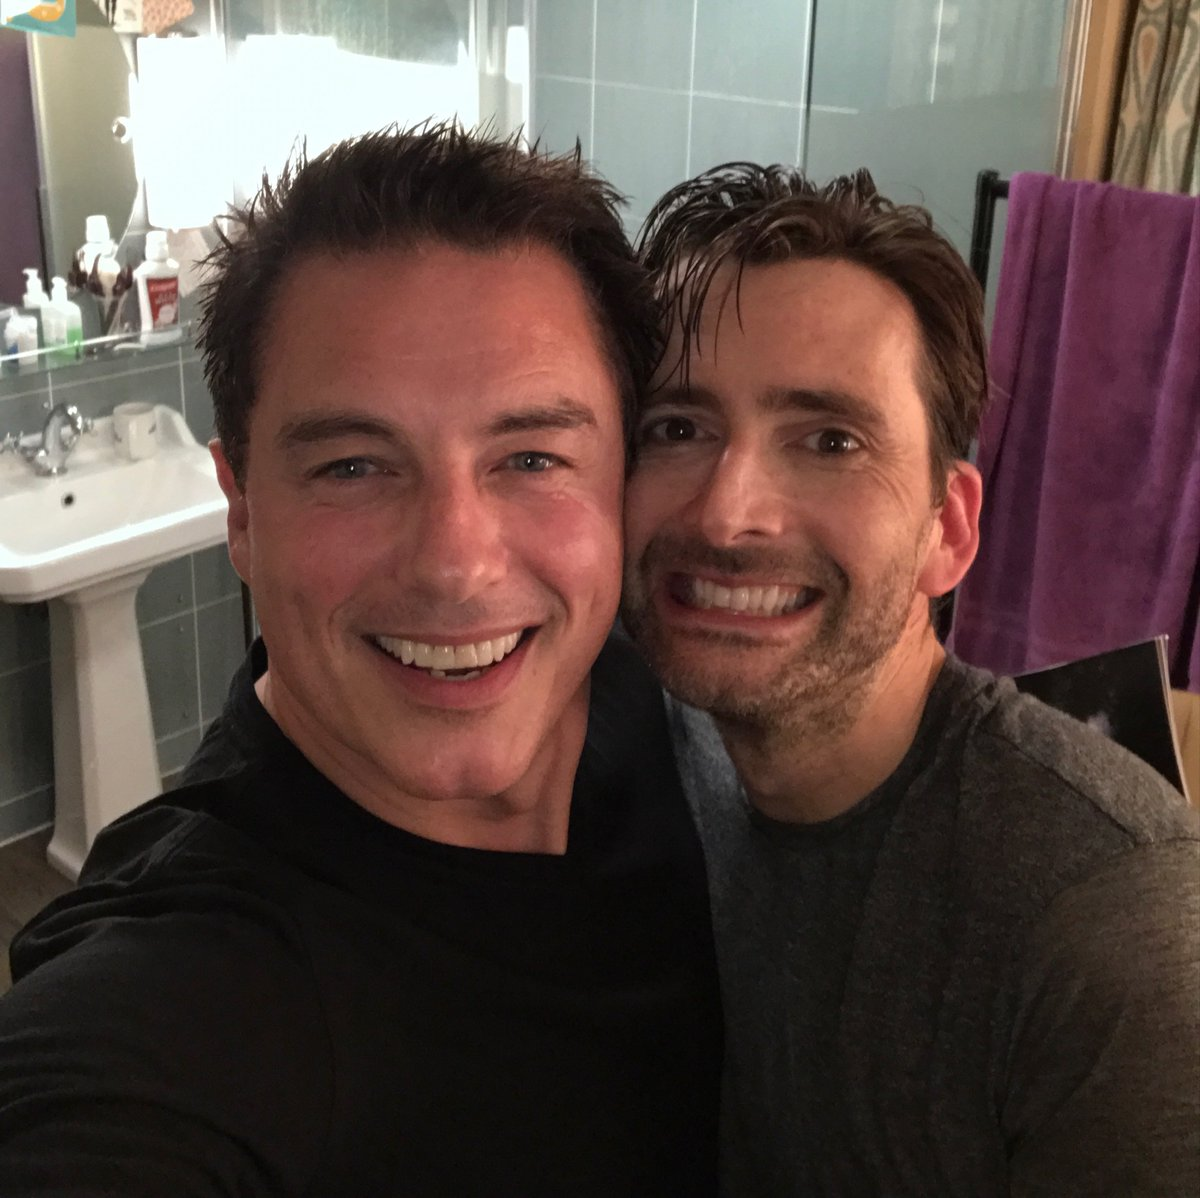 David Tennant with John Barrowman (who watched Don Juan In Soho)